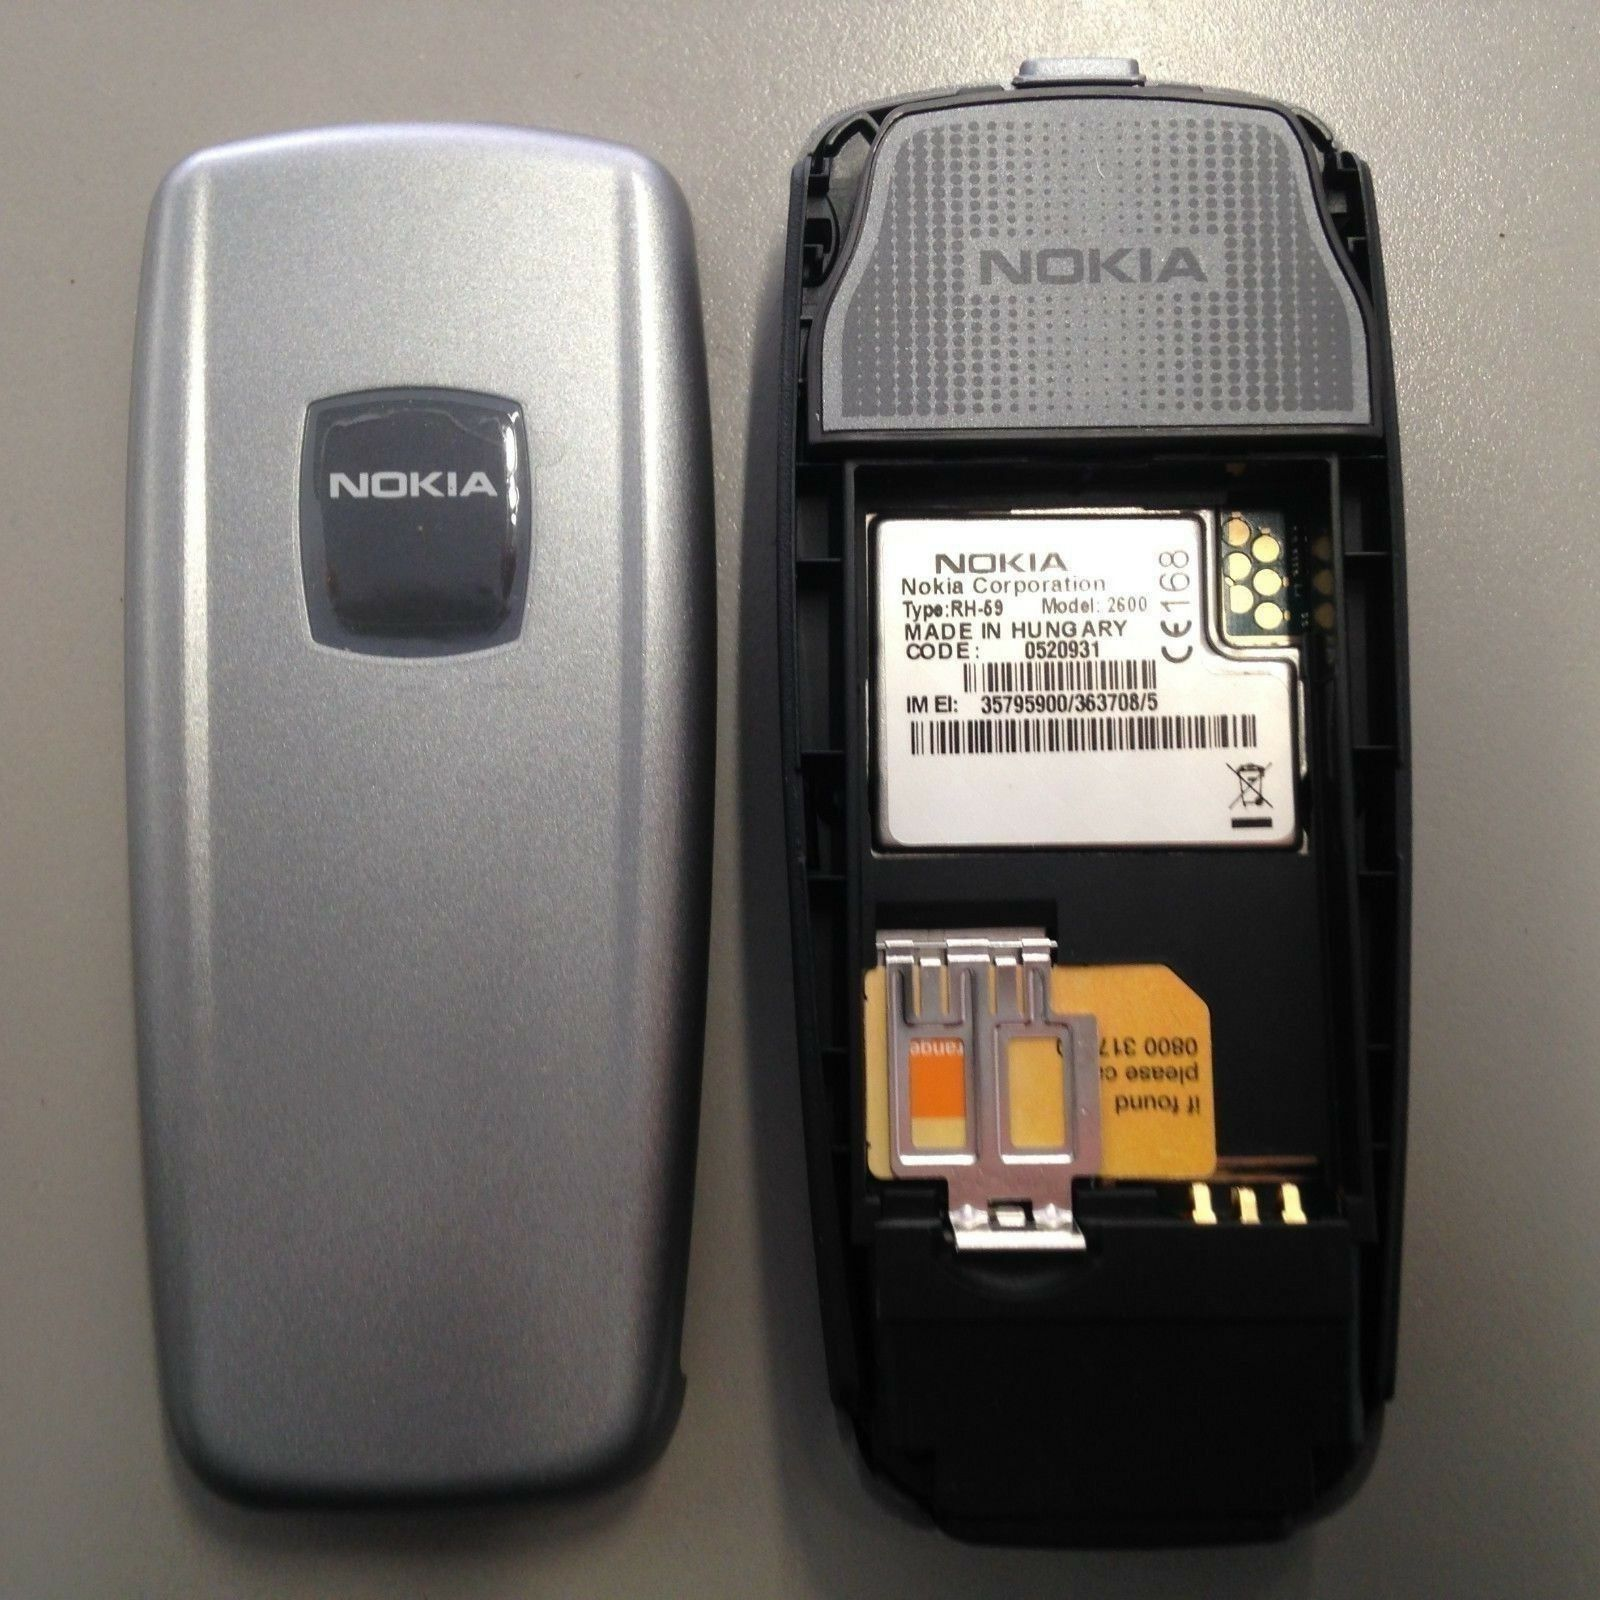 Nokia 2600 RH-59 how to connect to a computer to reflash it There is only charging for it 97